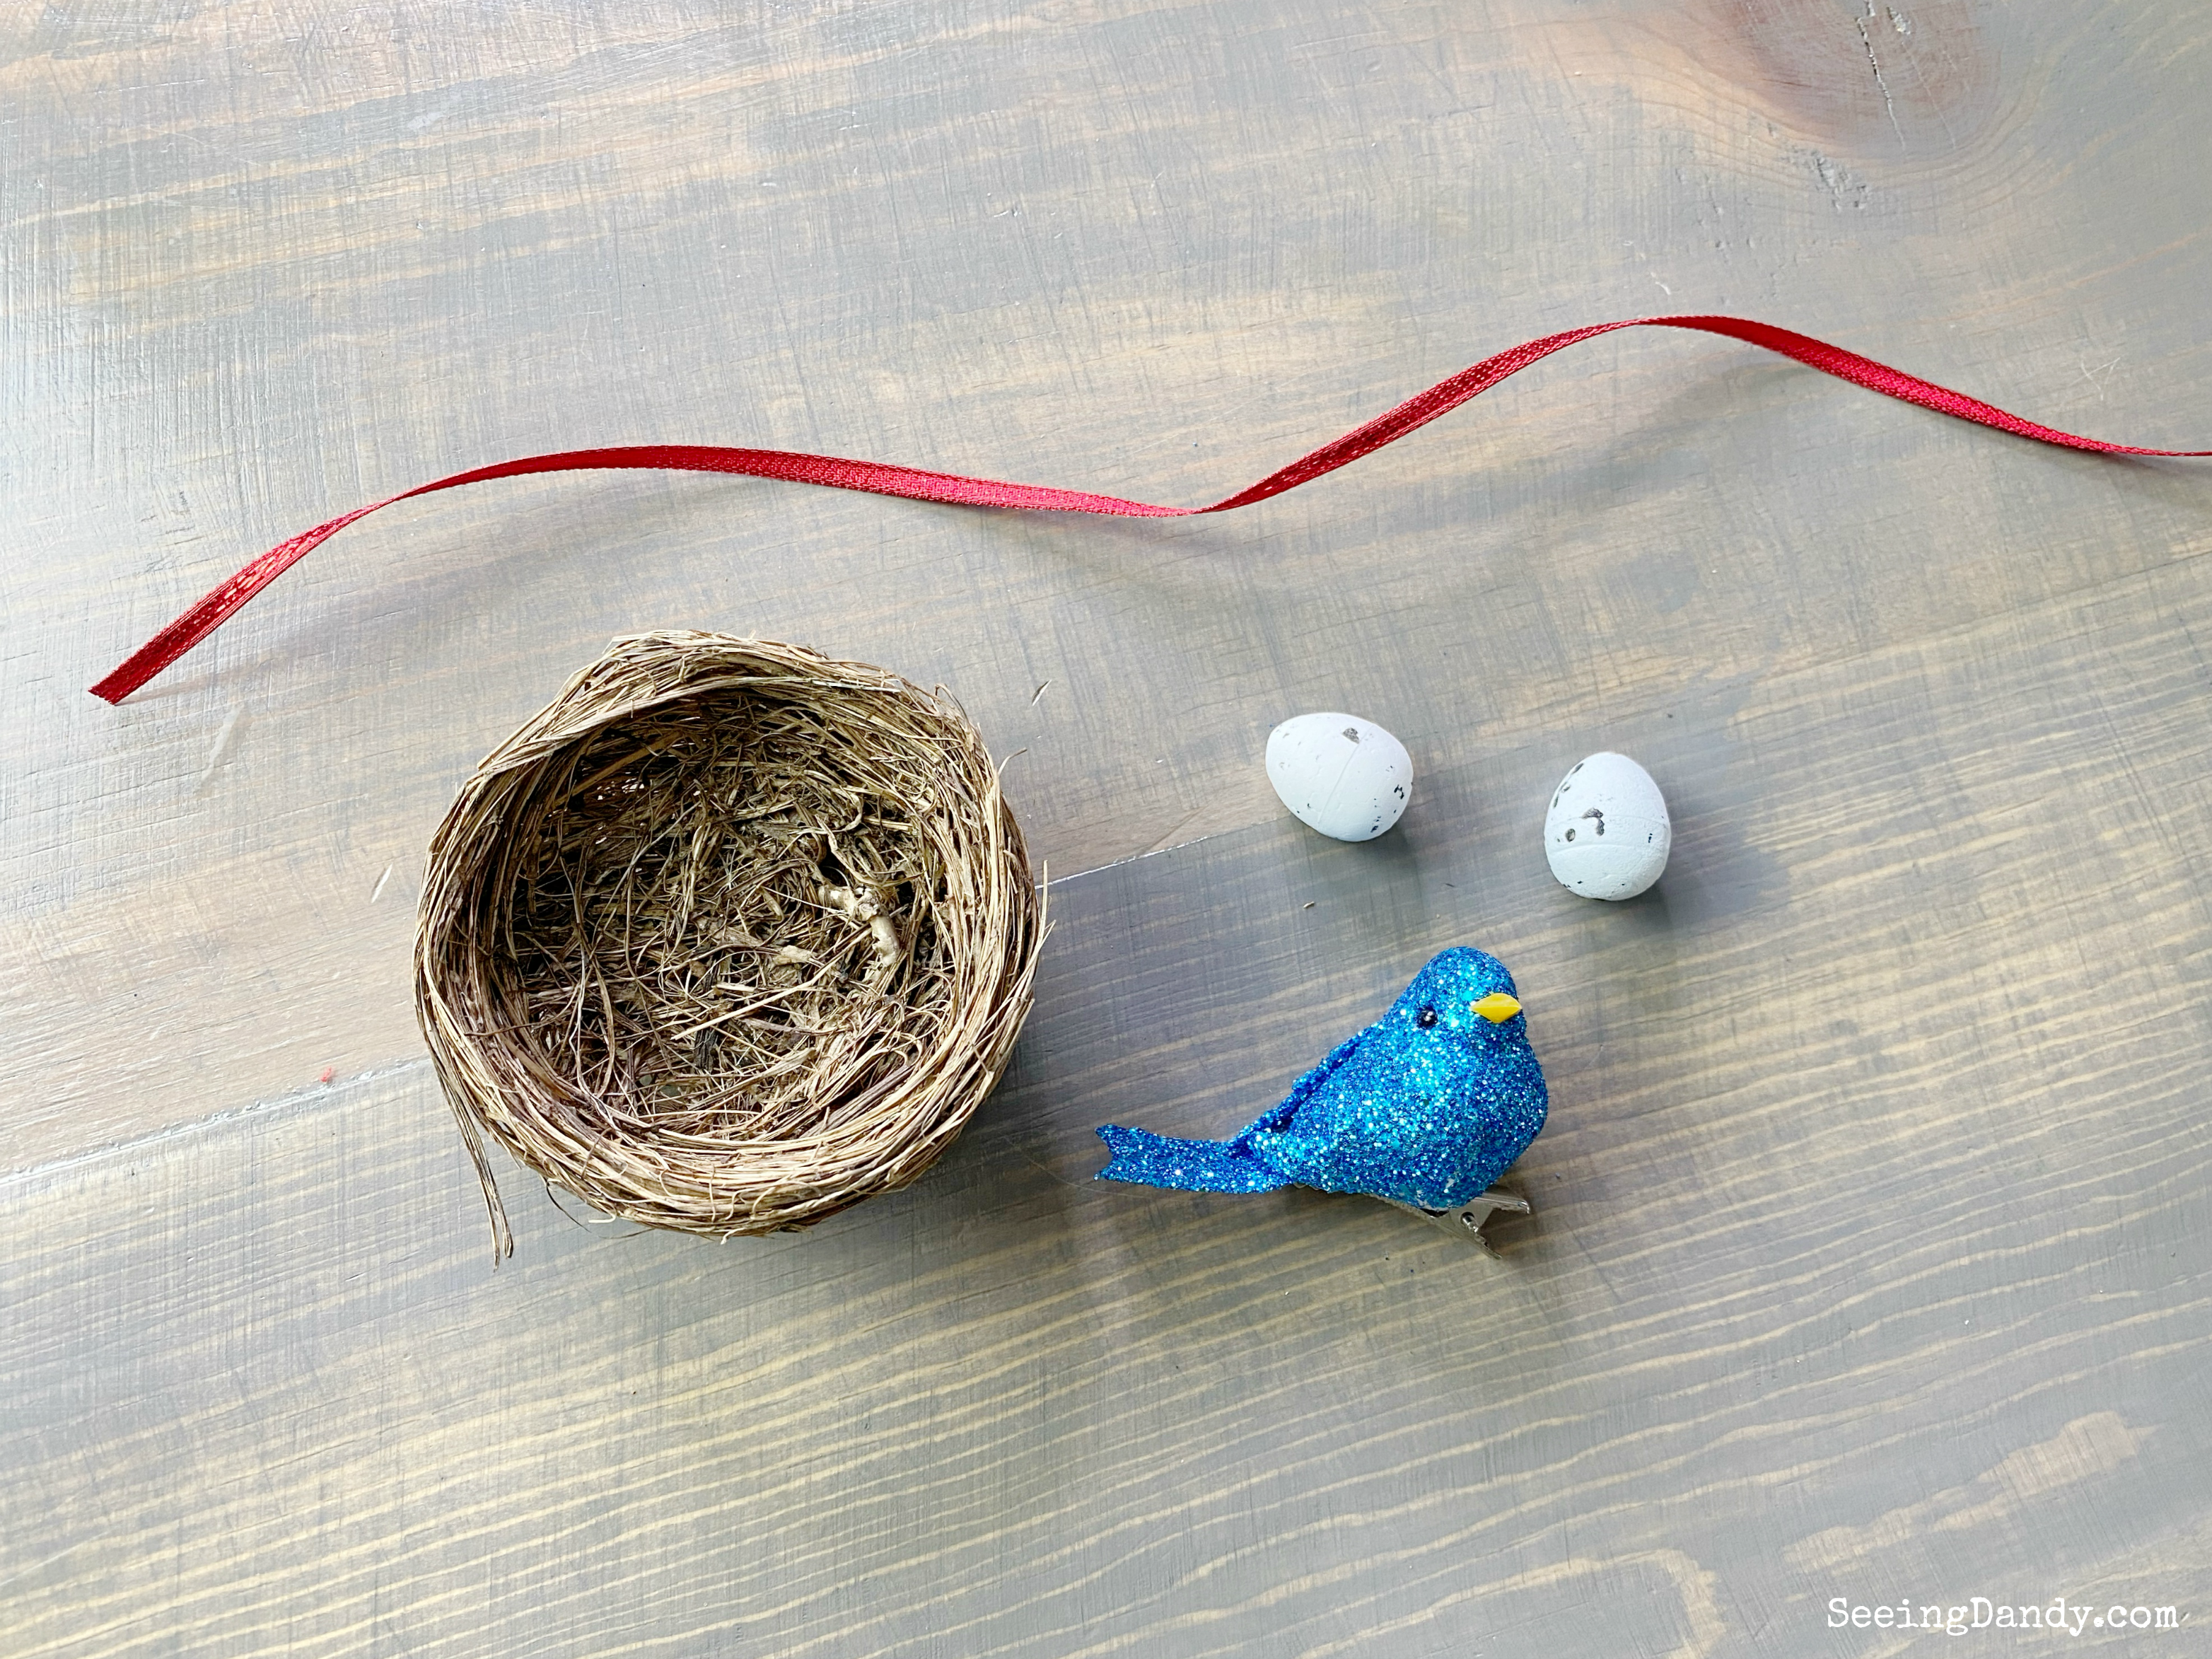 Craft materials for DIY bird nest ornament